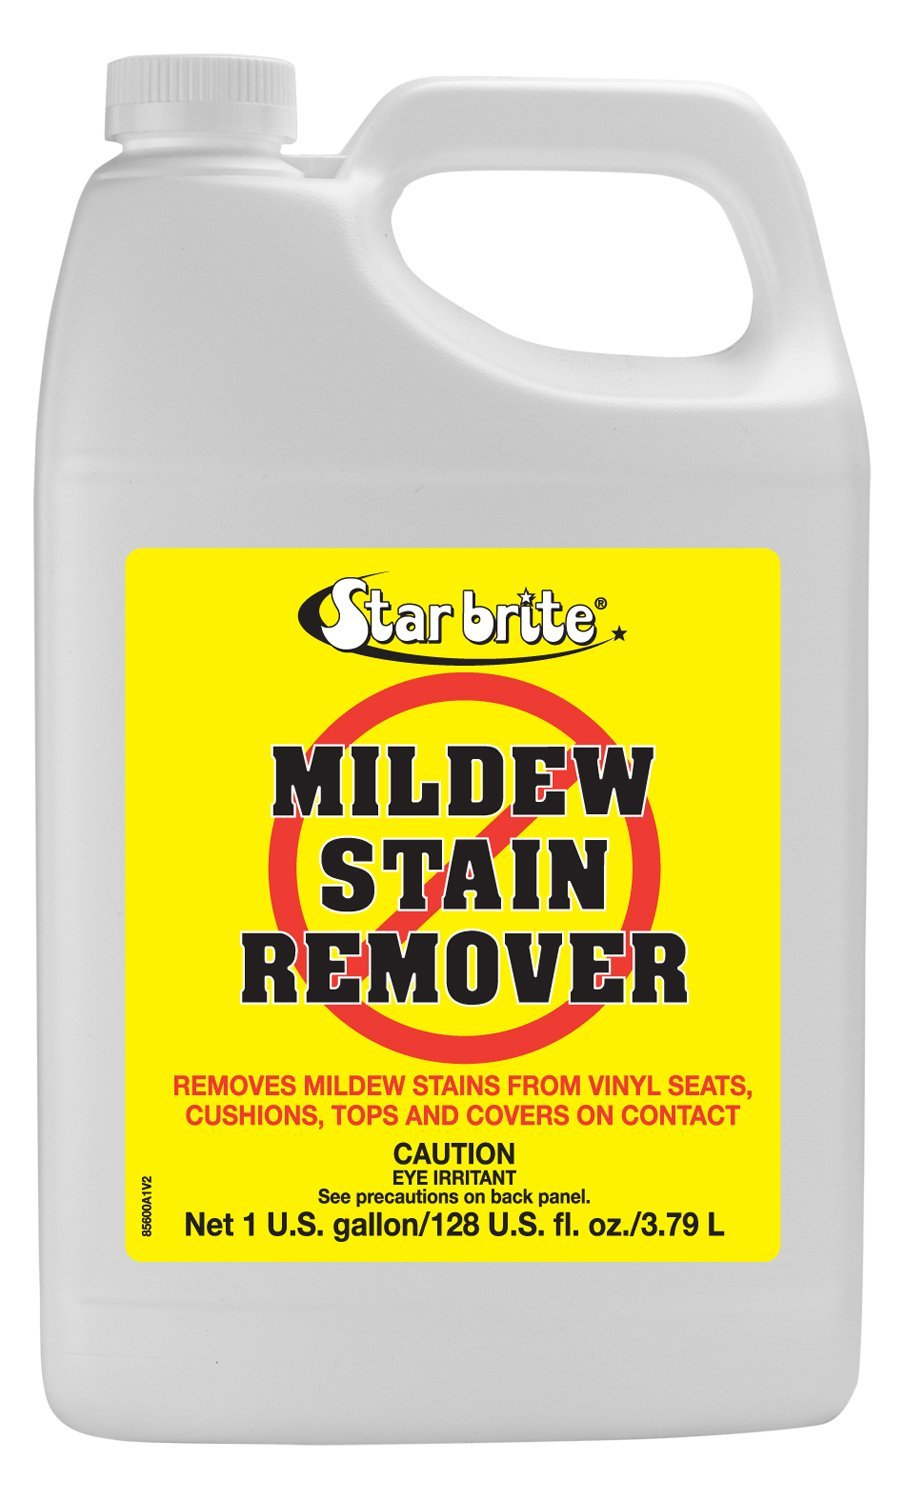 Star Brite Mold & Mildew Stain Remover + Cleaner – Lifts Dirt & Removes Mildew Stains on Contact